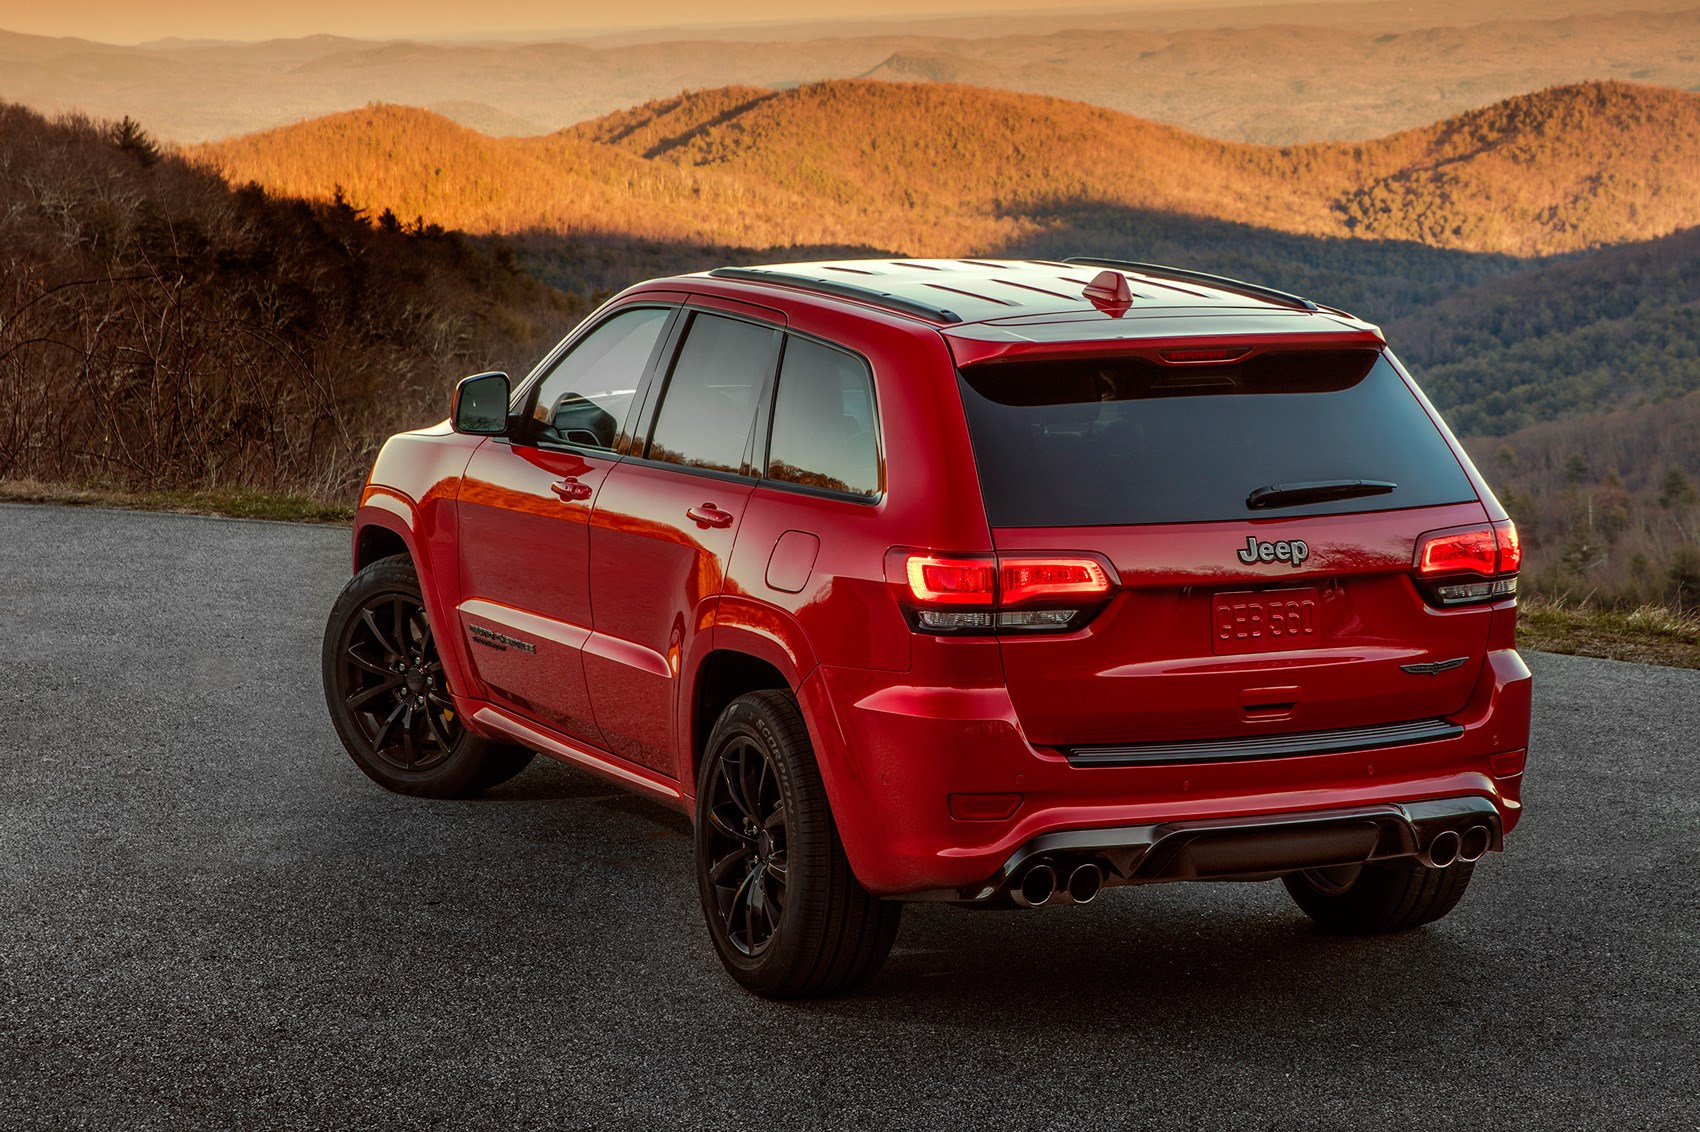 Fiat Chrysler unveils 707 HP Jeep Grand Cherokee Trackhawk, fastest ever